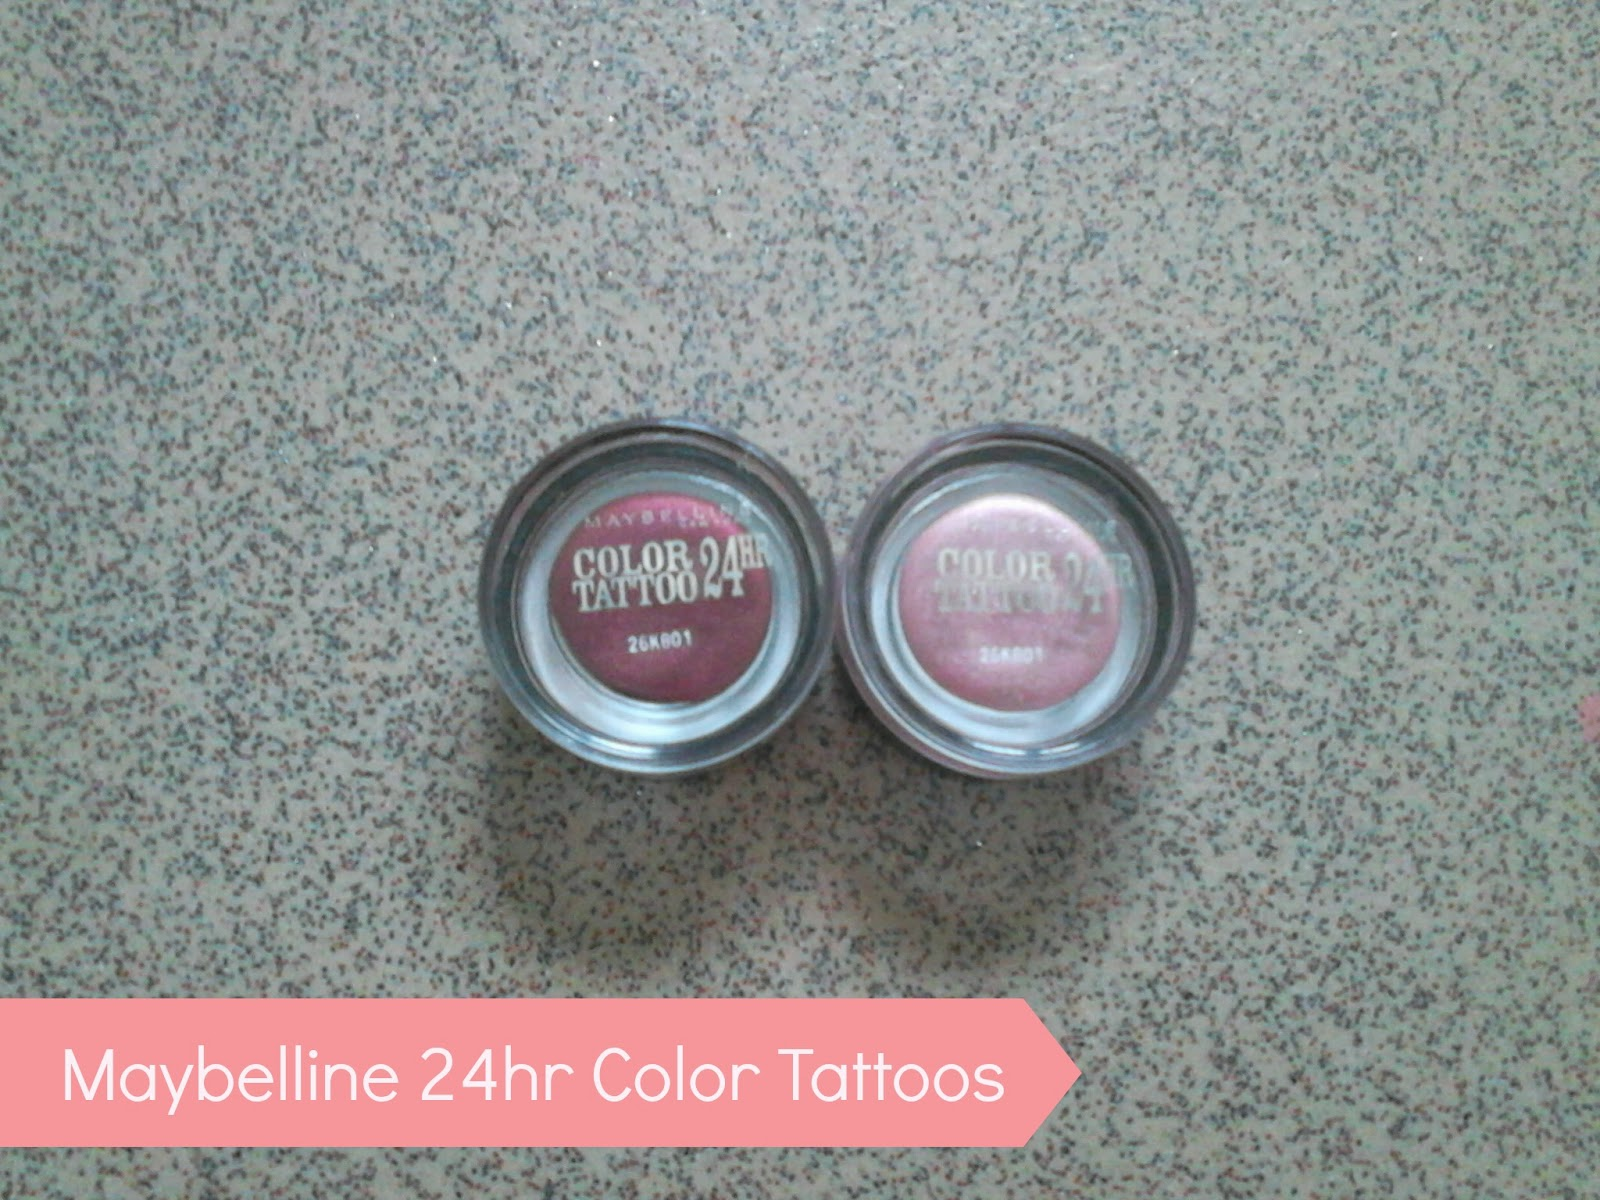 Maybelline 24hr Color Tattoos in Metallic Pomegranate and Pink Gold